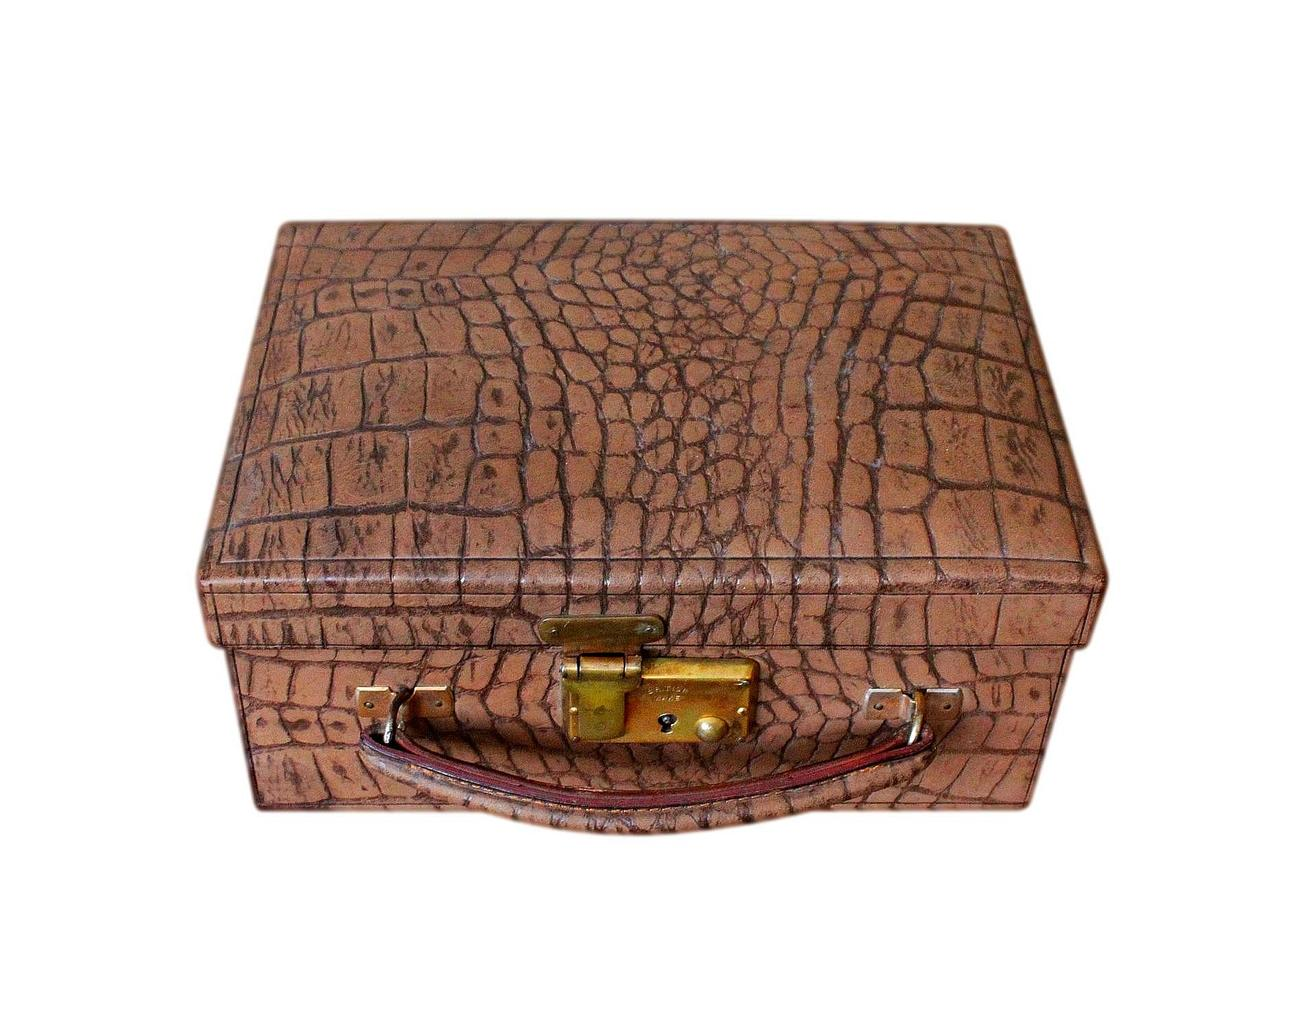 Art_Deco_Croc_Jewellery_Box.jpg